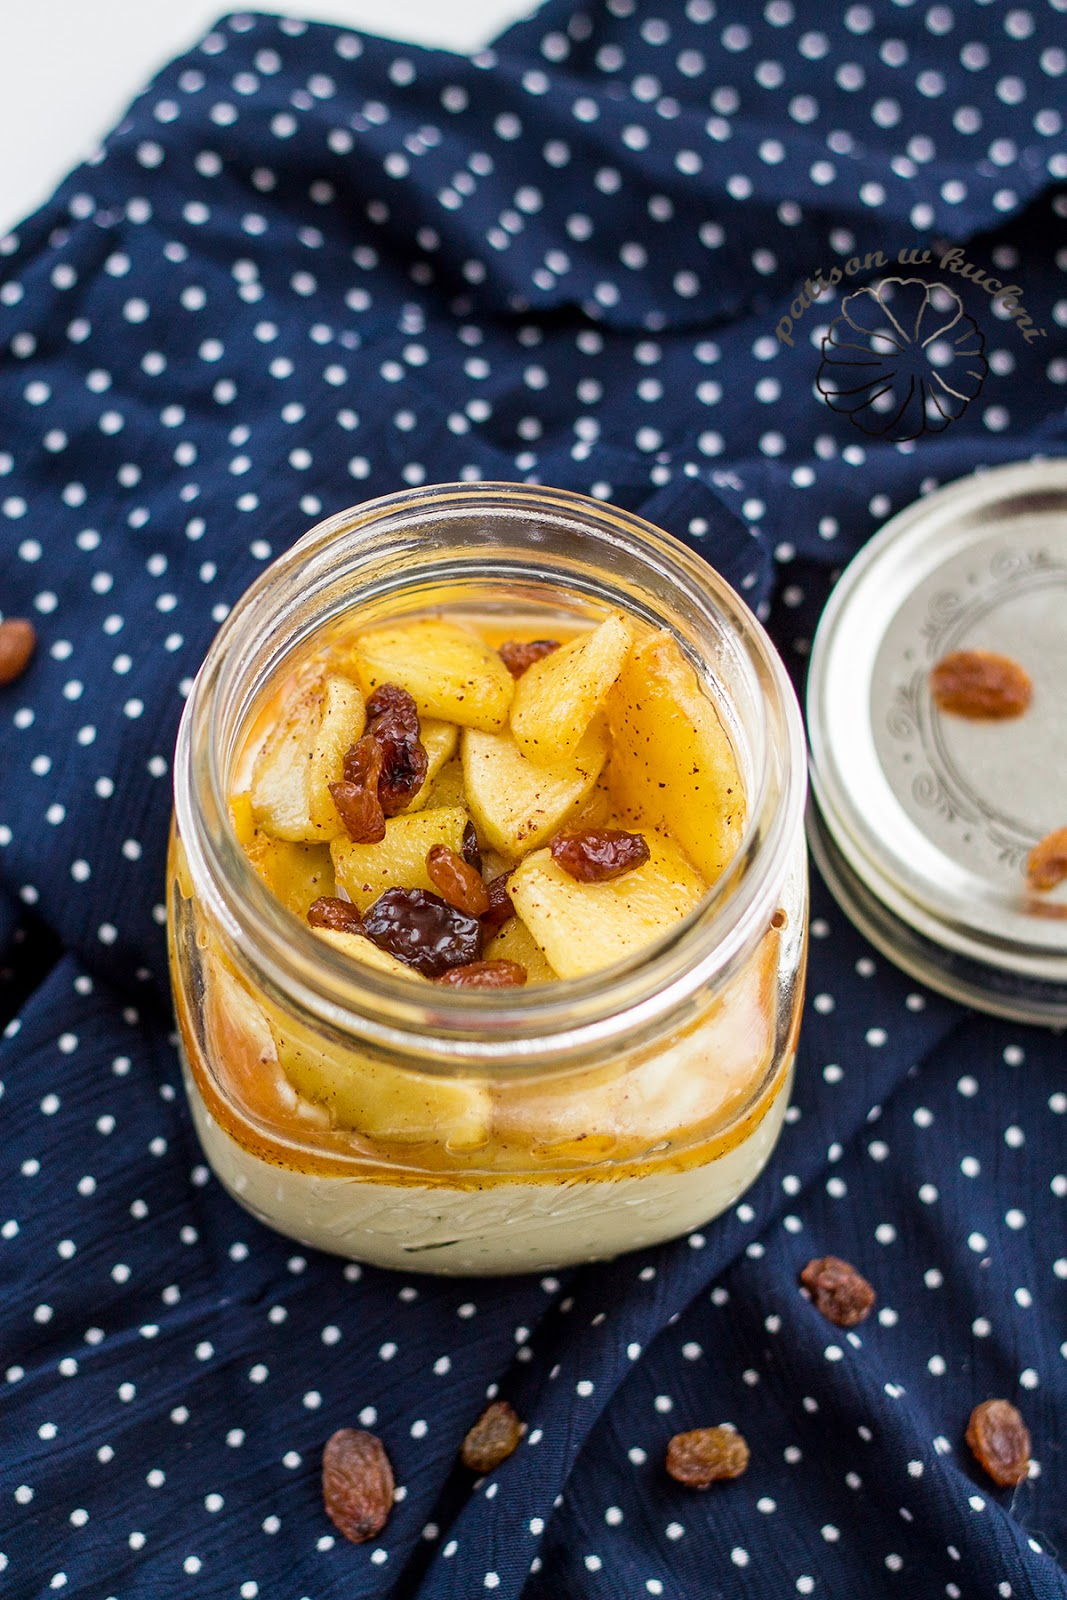 Millet pudding with caramelized apples.